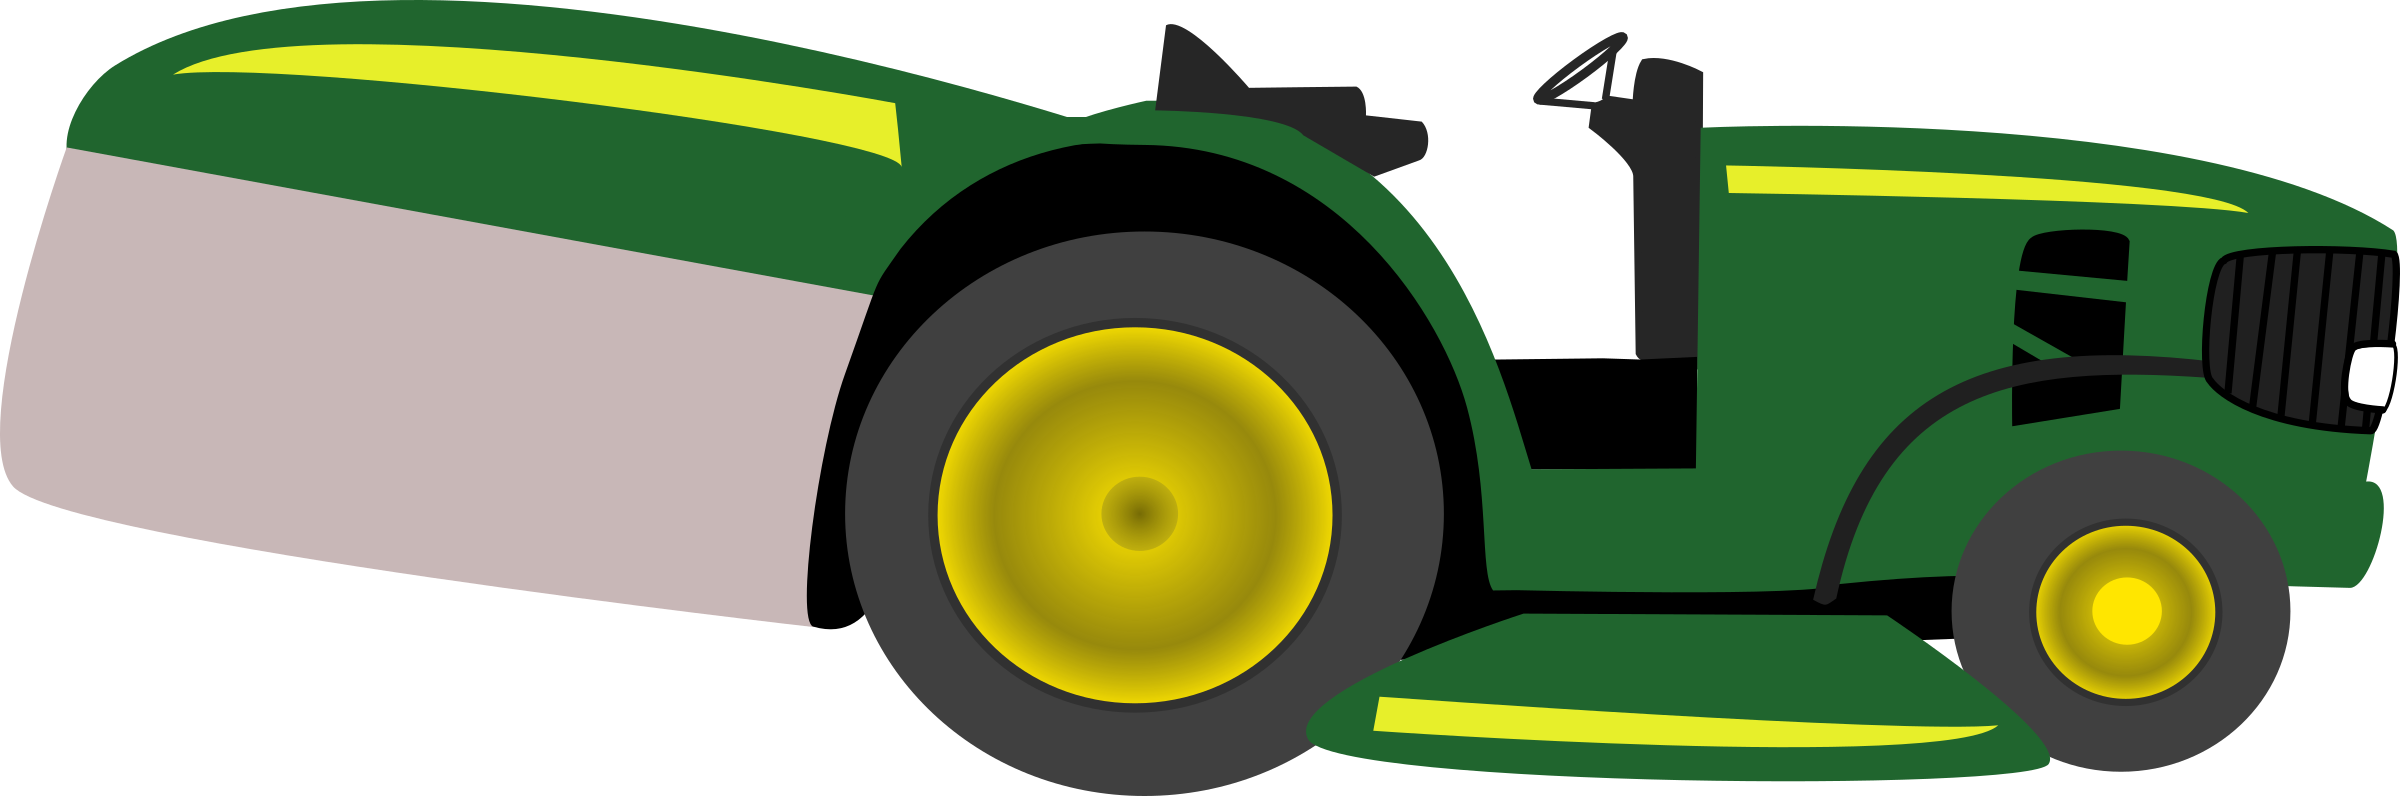 Tractor big image png. Lawn mower clipart clip art royalty free